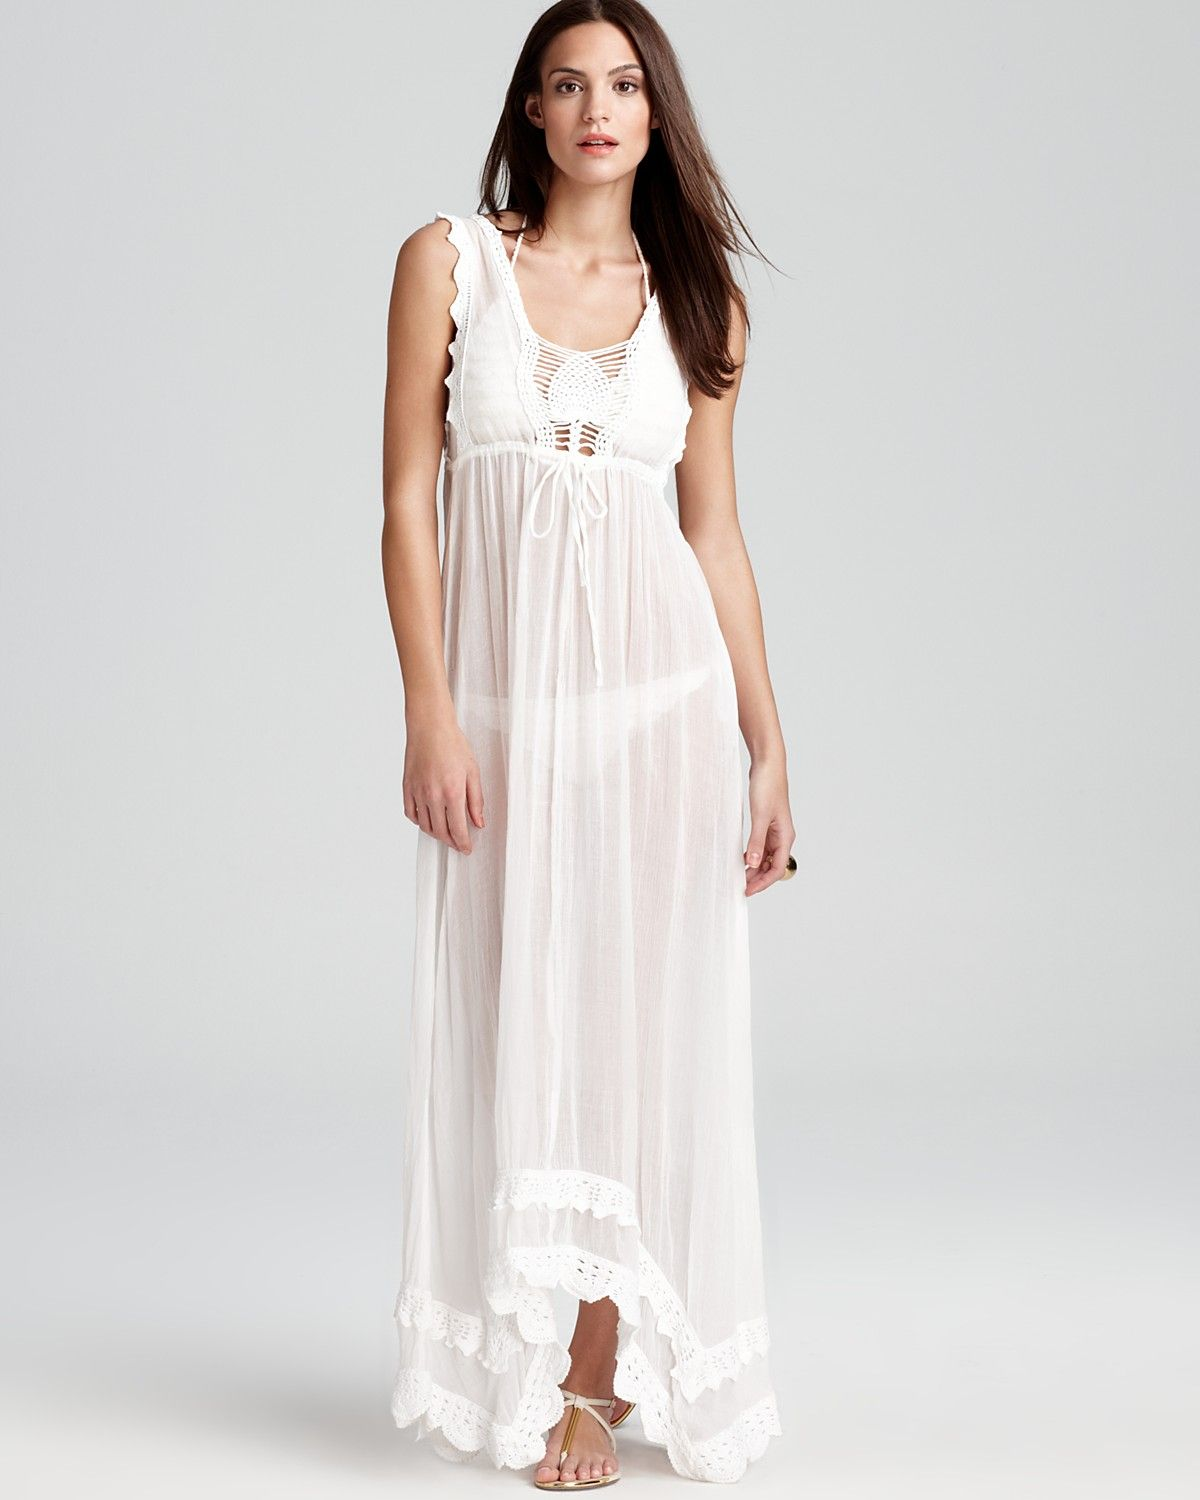 OndadeMar Whites Cotton Gauze Crochet Maxi Dress Cover Up | Style ...